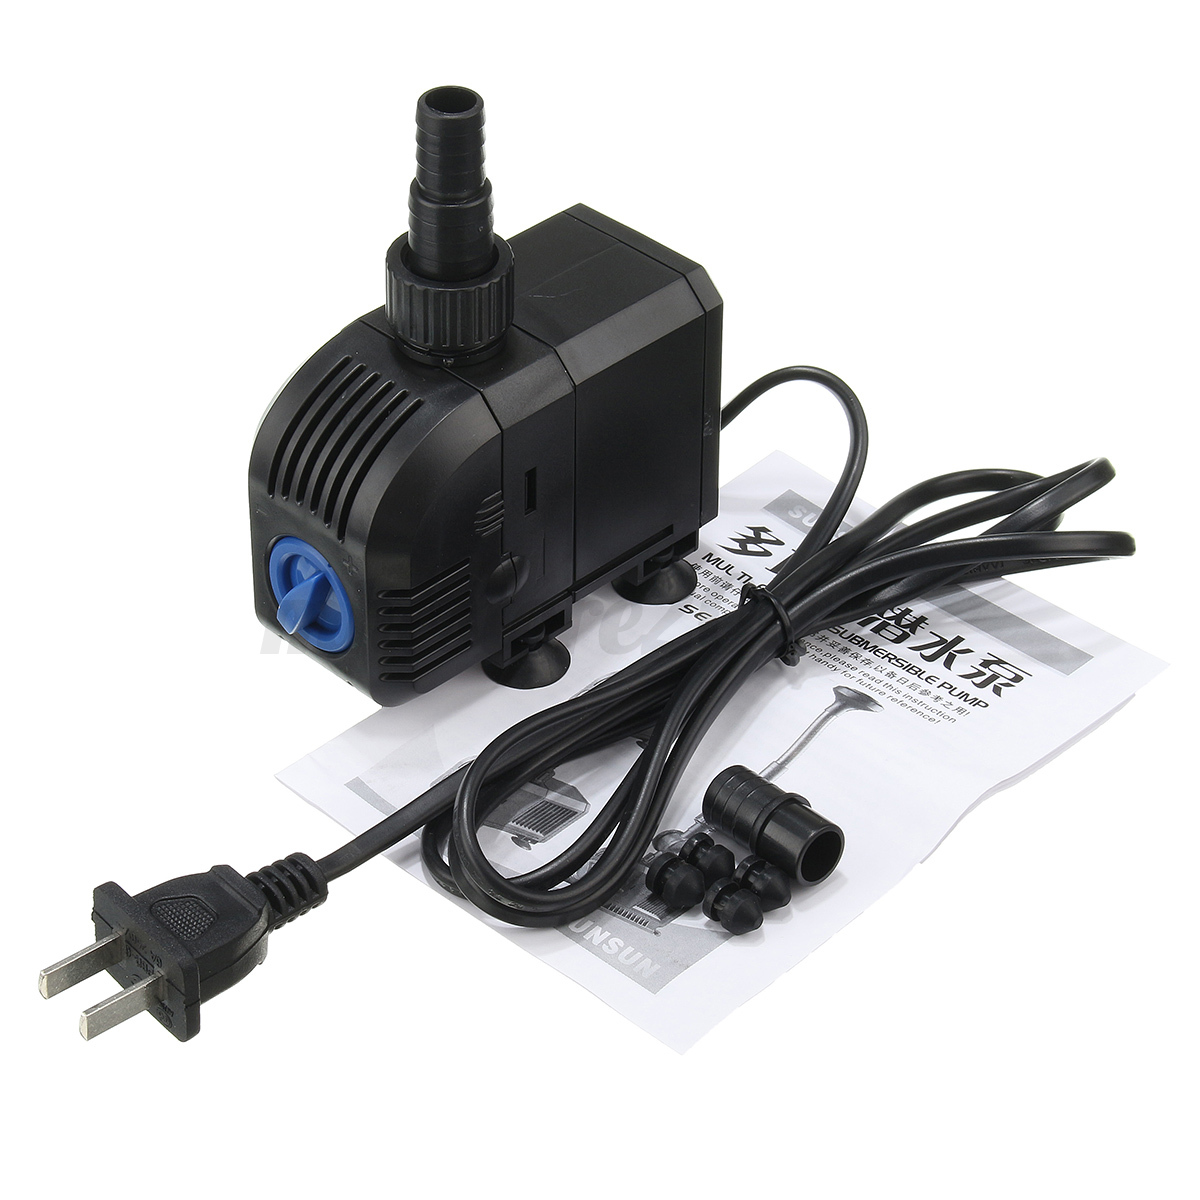 Submersible water pump fish tank aquarium waterfall for Fish tank water pump